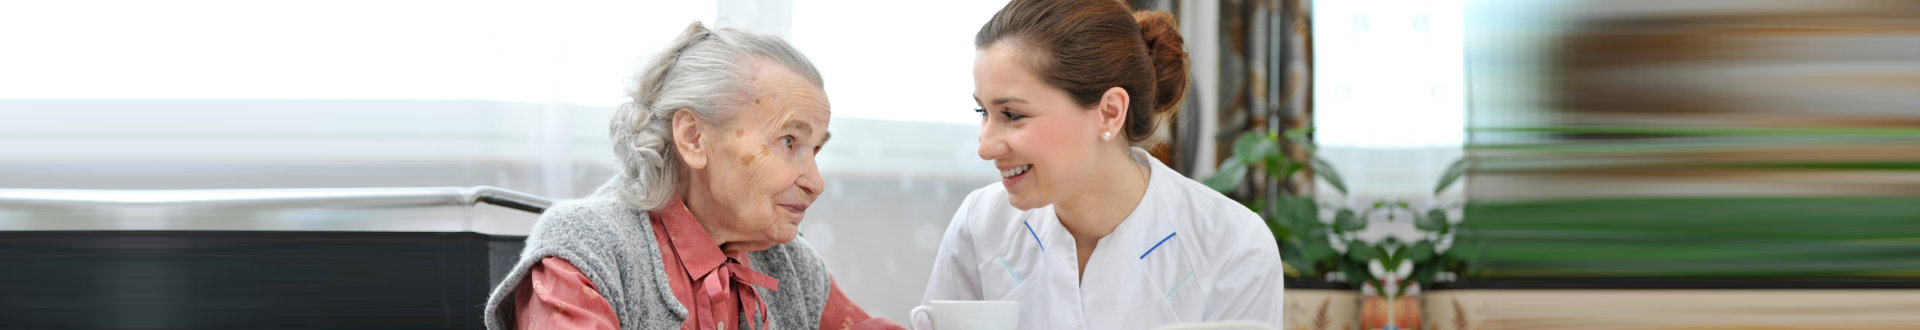 female caregiver and senior woman smiling while holding the cup